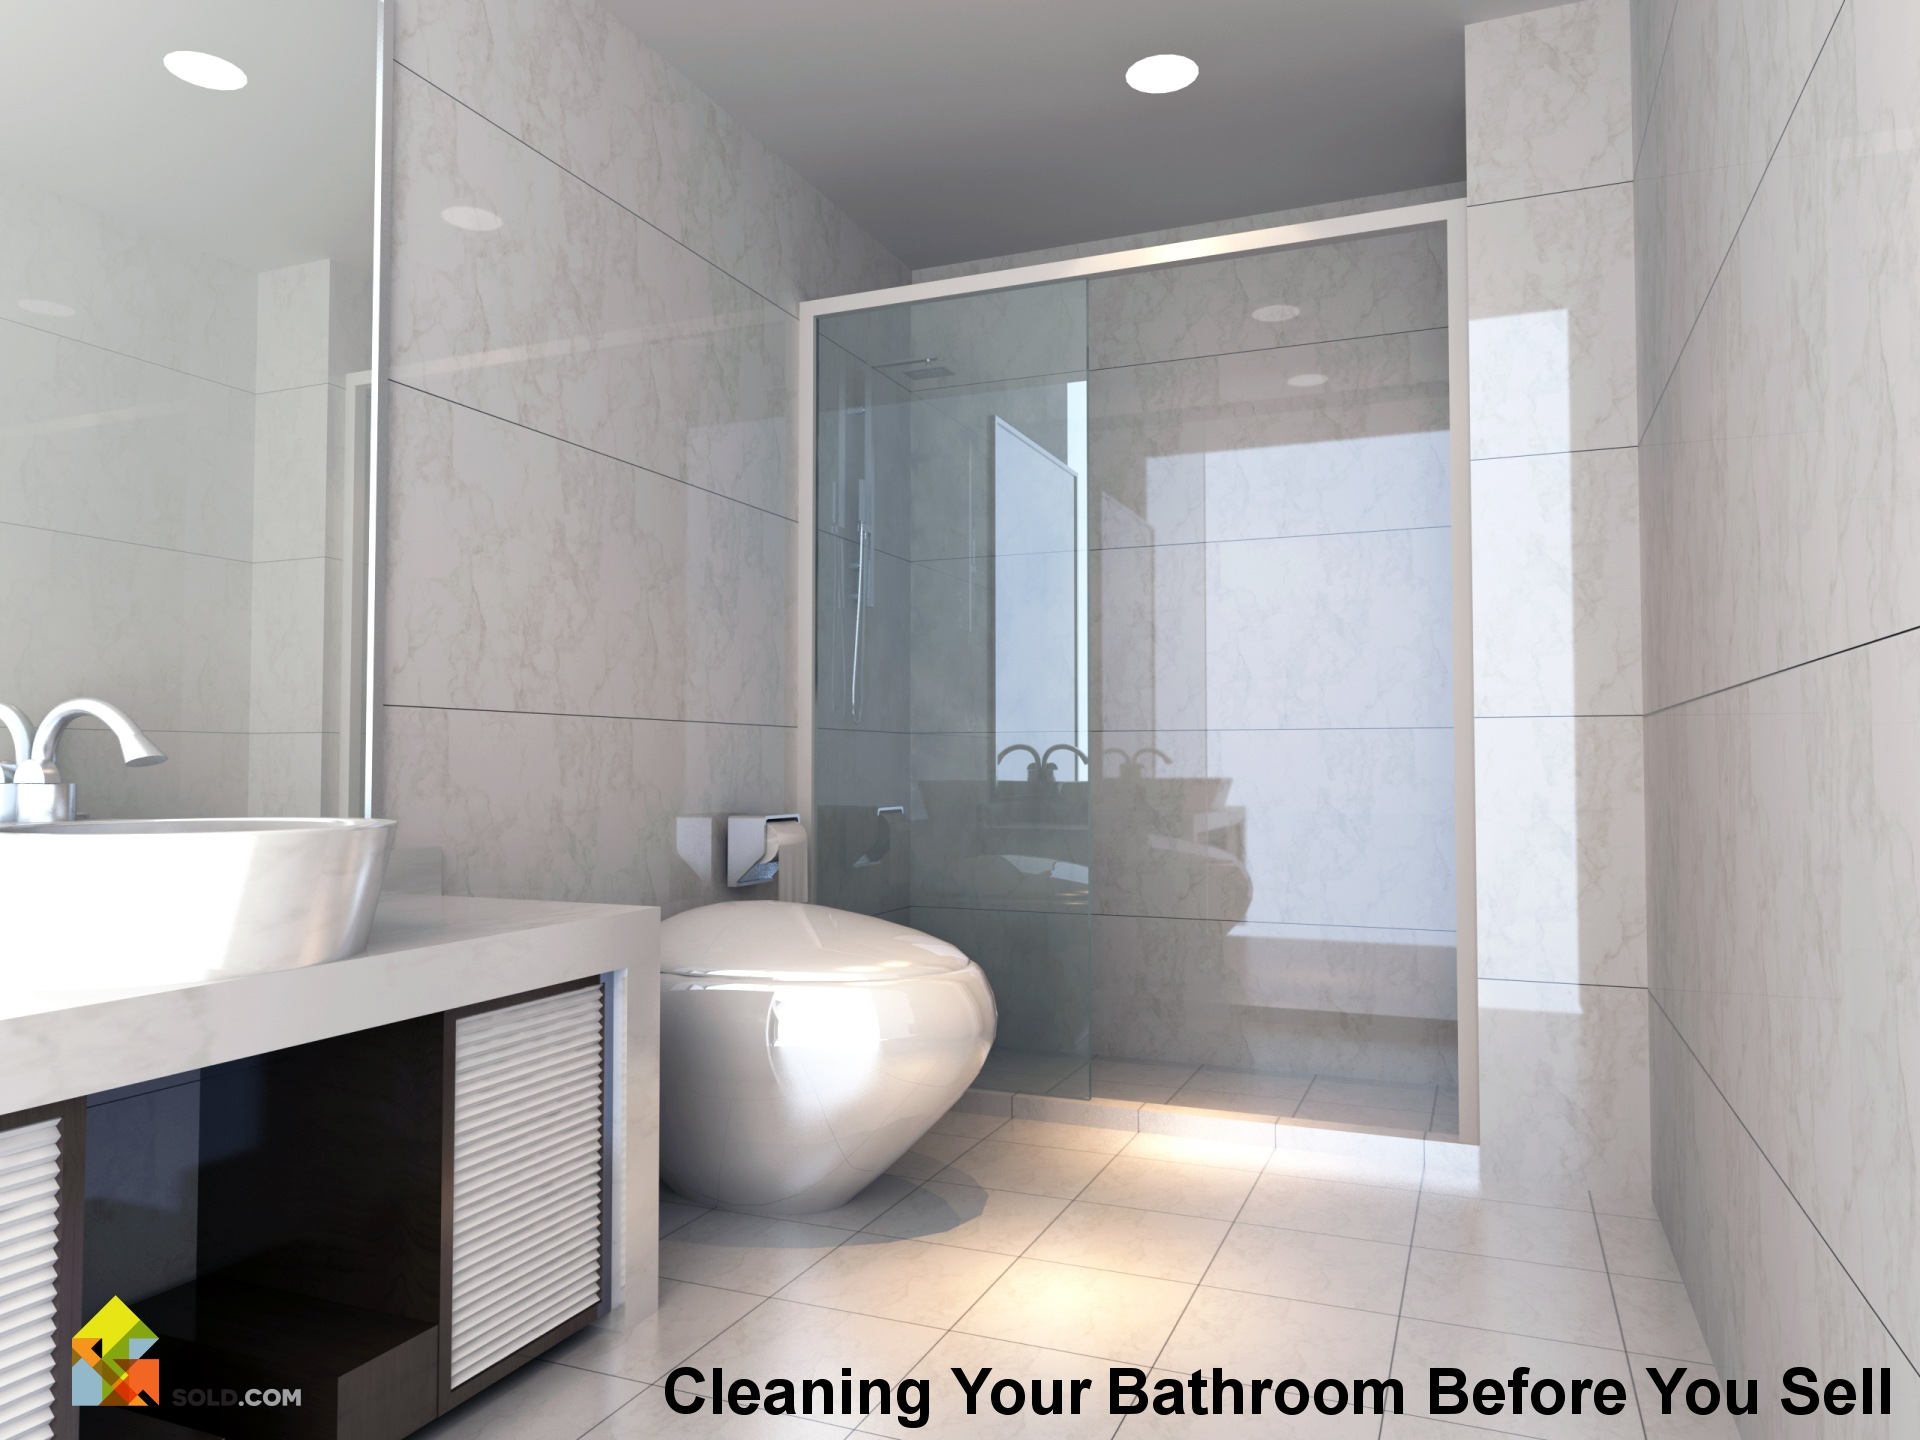 10 Tips for Cleaning Your Bathroom Before You Sell